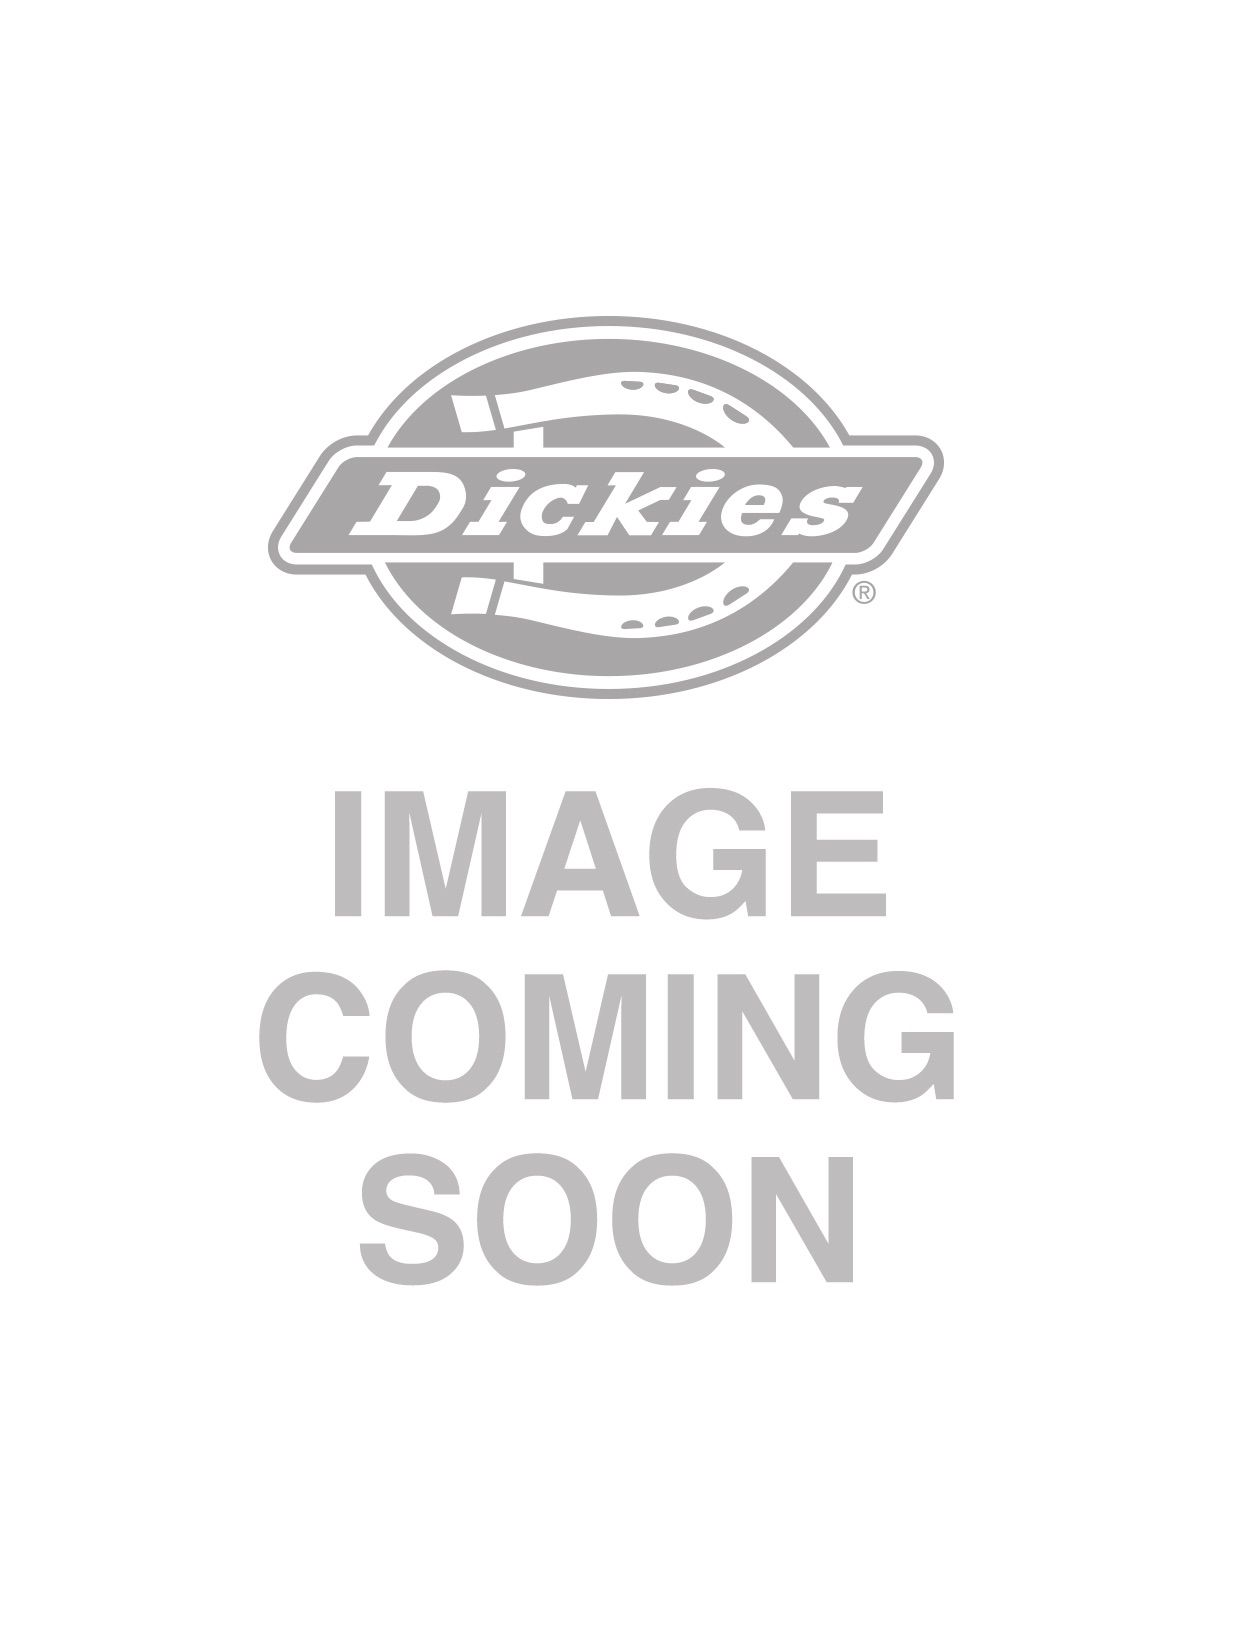 Dickies Womens Warrensburg Hoody